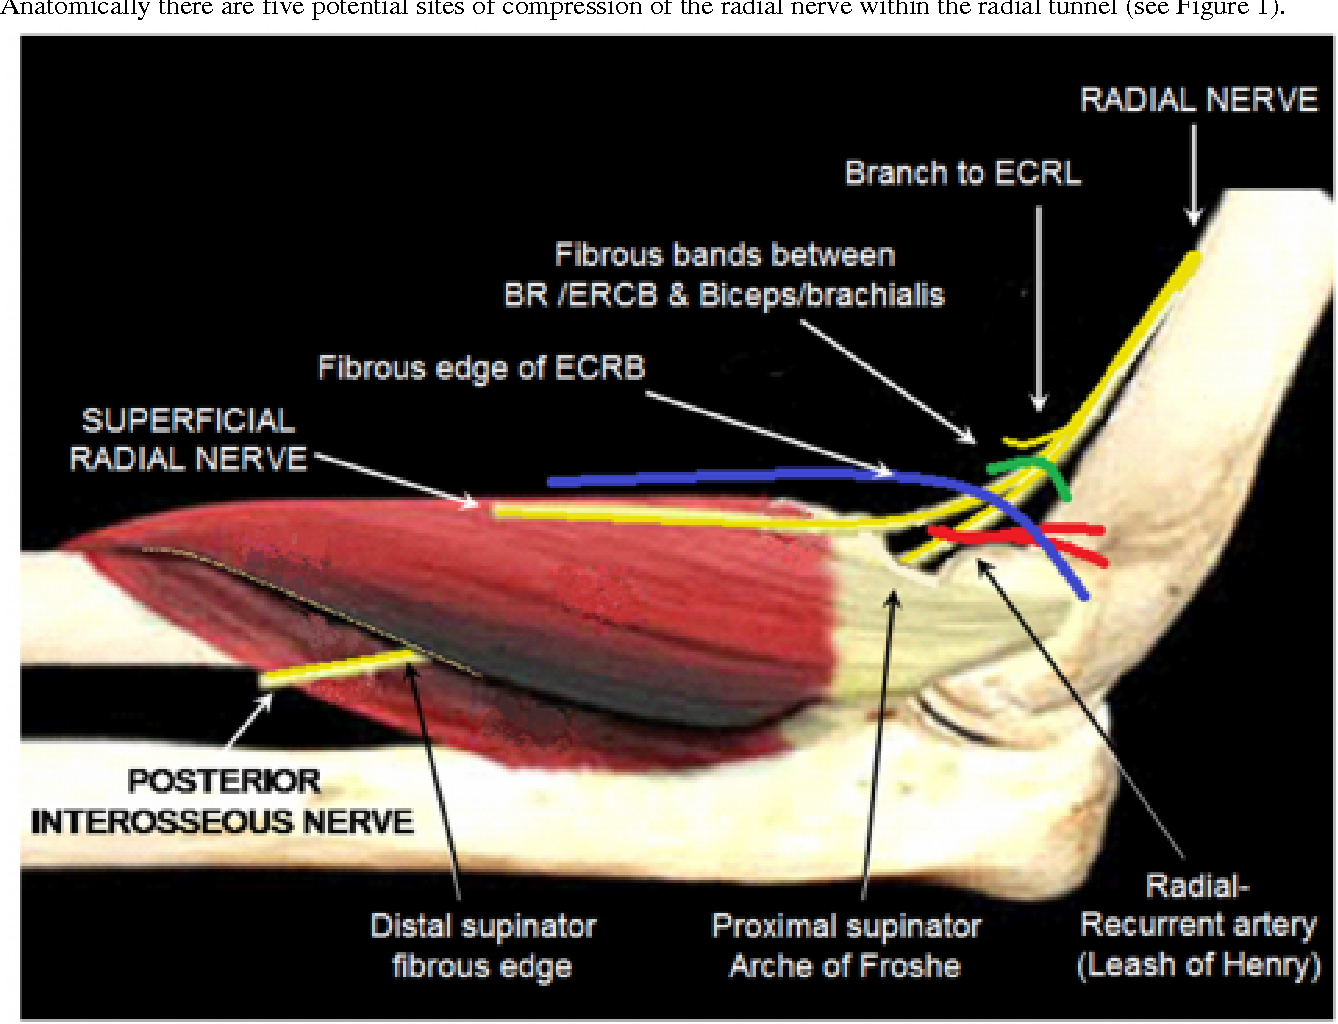 Compression neuropathies of the radial nerve - Semantic Scholar